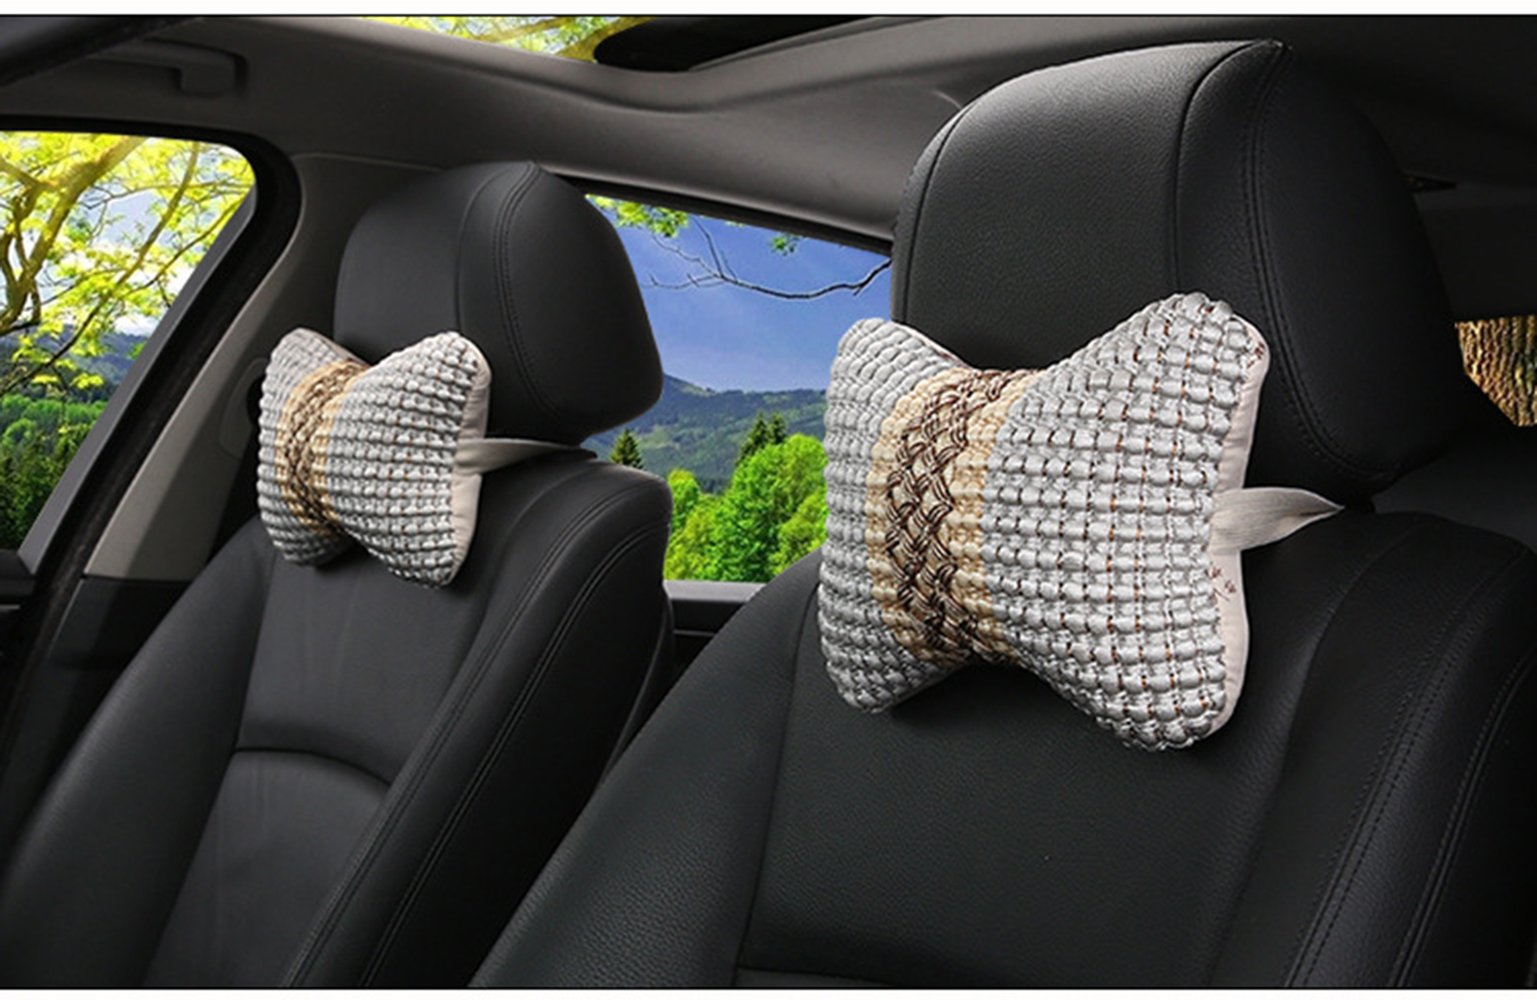 SLY Car Neck Head Support Pillow Headrest Cushion Nature Fiber More Healthier Softer for Relieve Neck Fatigue Home Rest Breathable and Comfortable Set Of 2